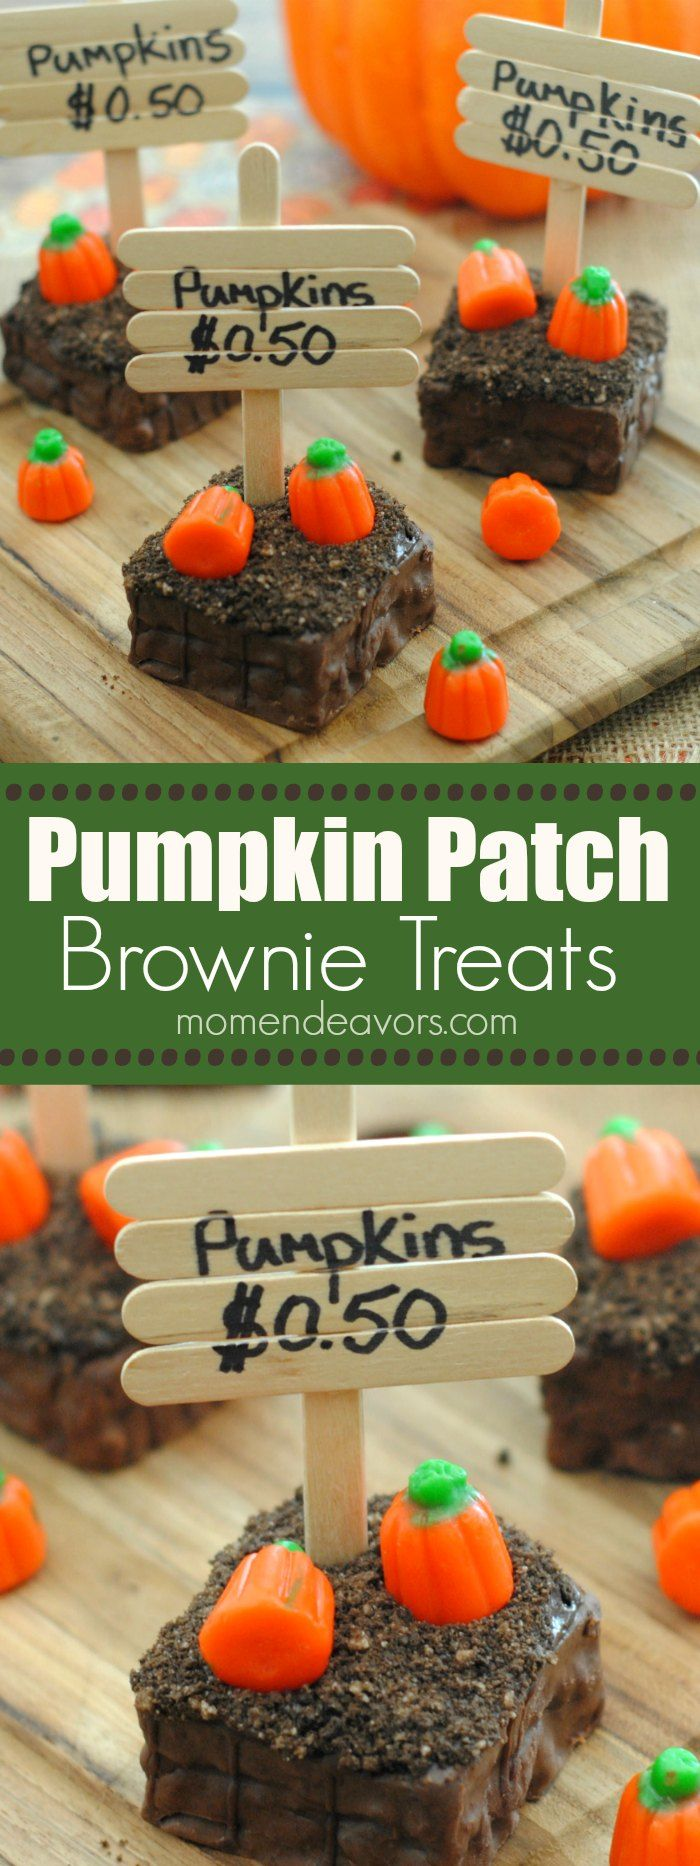 Pumpkin Patch Brownies - Mom Endeavors